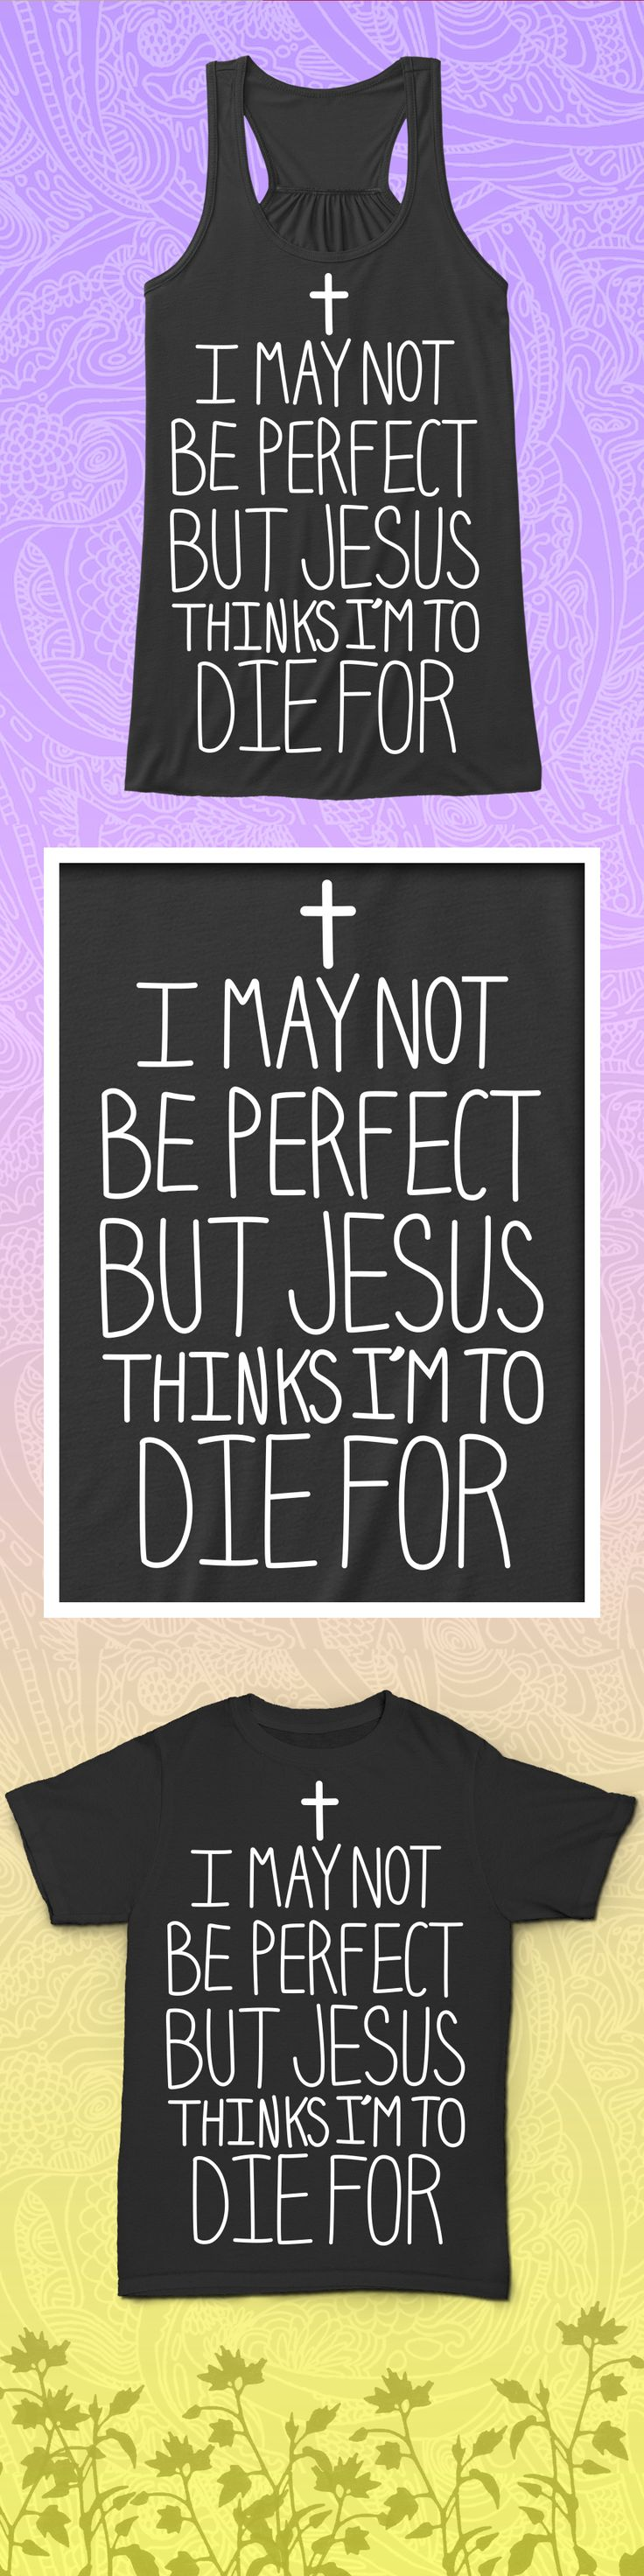 Jesus Think I'm To Die For - Limited edition. Order 2 or more for friends/family & save on shipping! Makes a great gift!